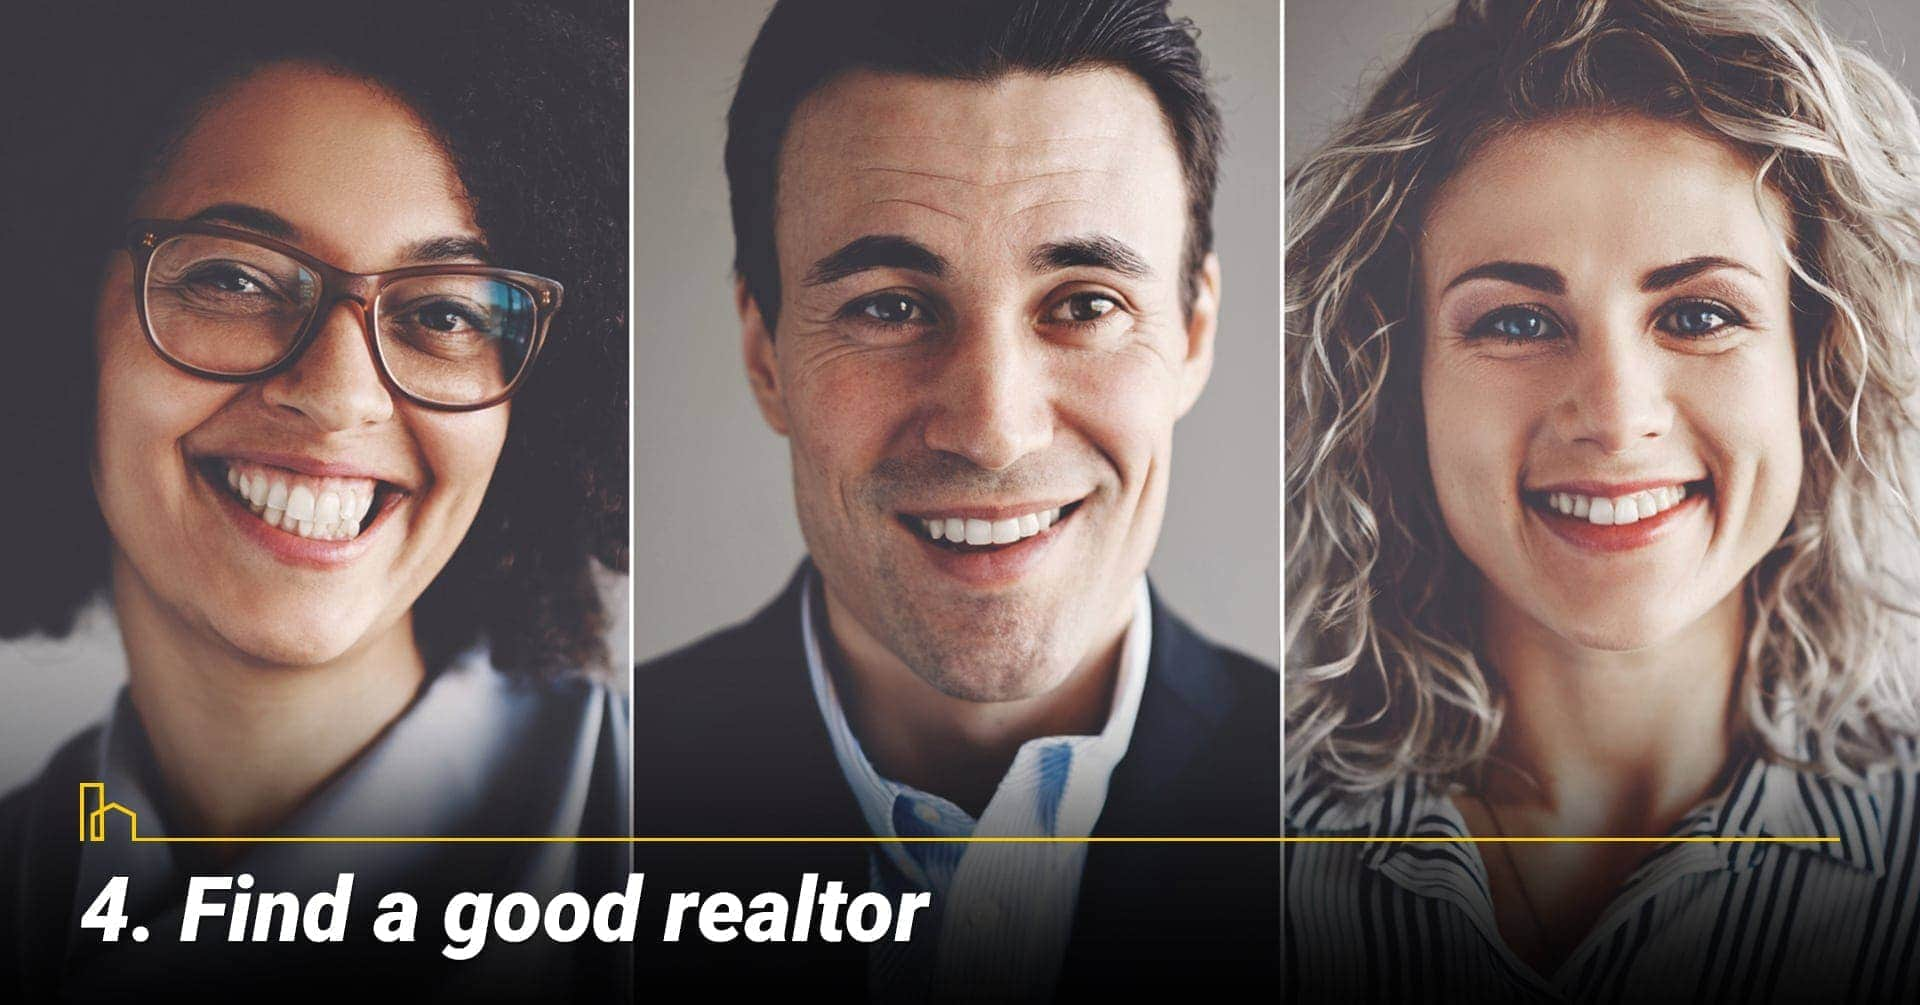 Find a good realtor